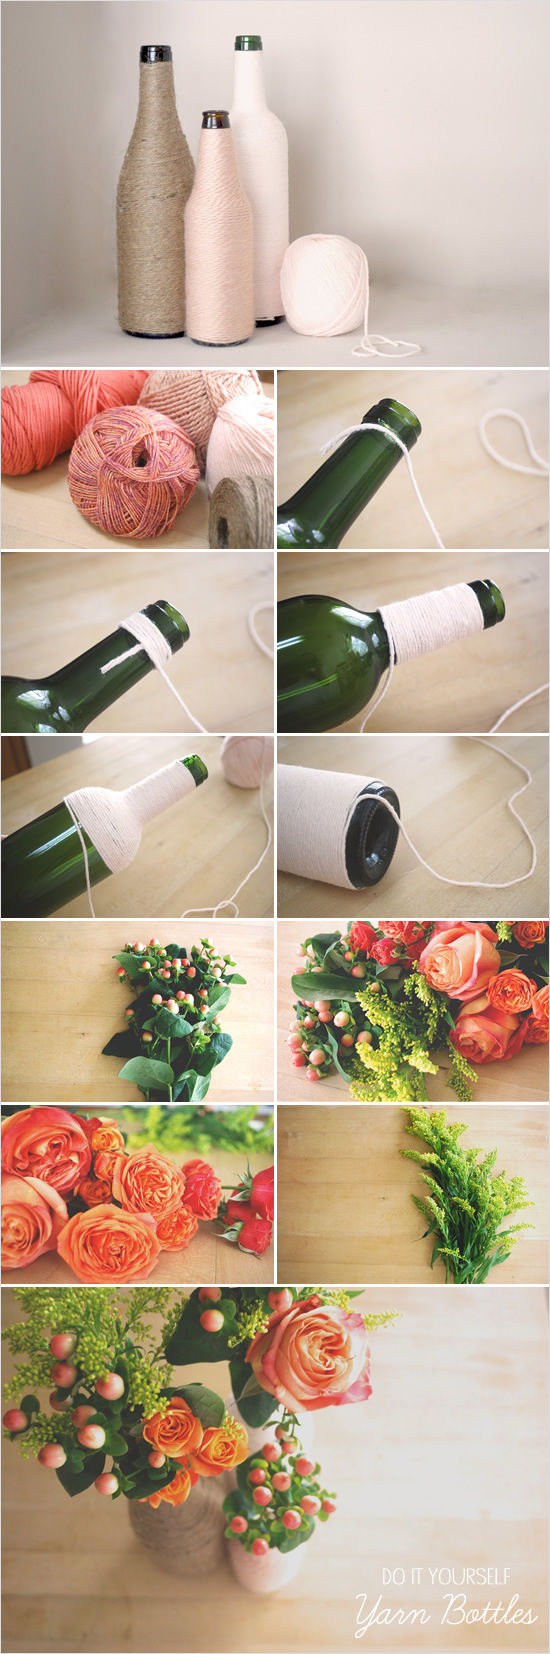 204245_diy-yarn-wrapped-bottles-l-blog7663text